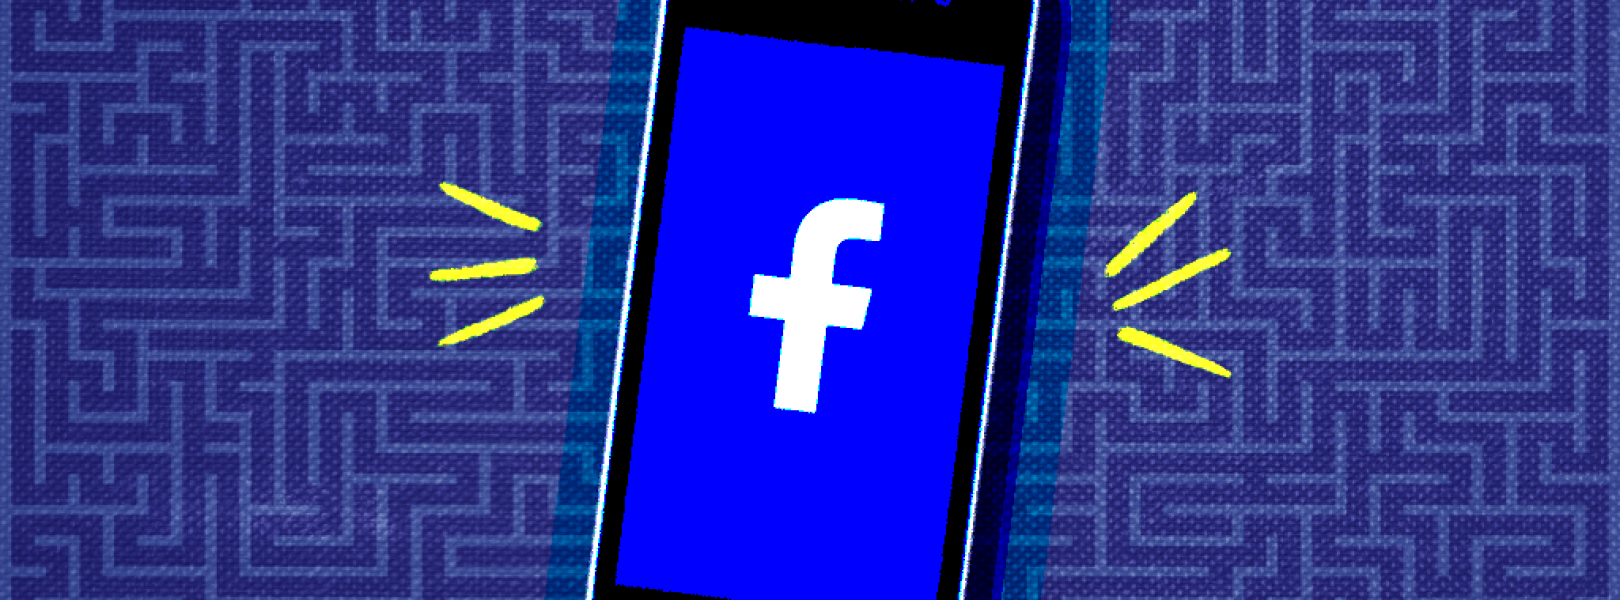 Graphic of a smartphone with the facebook logo on the screen